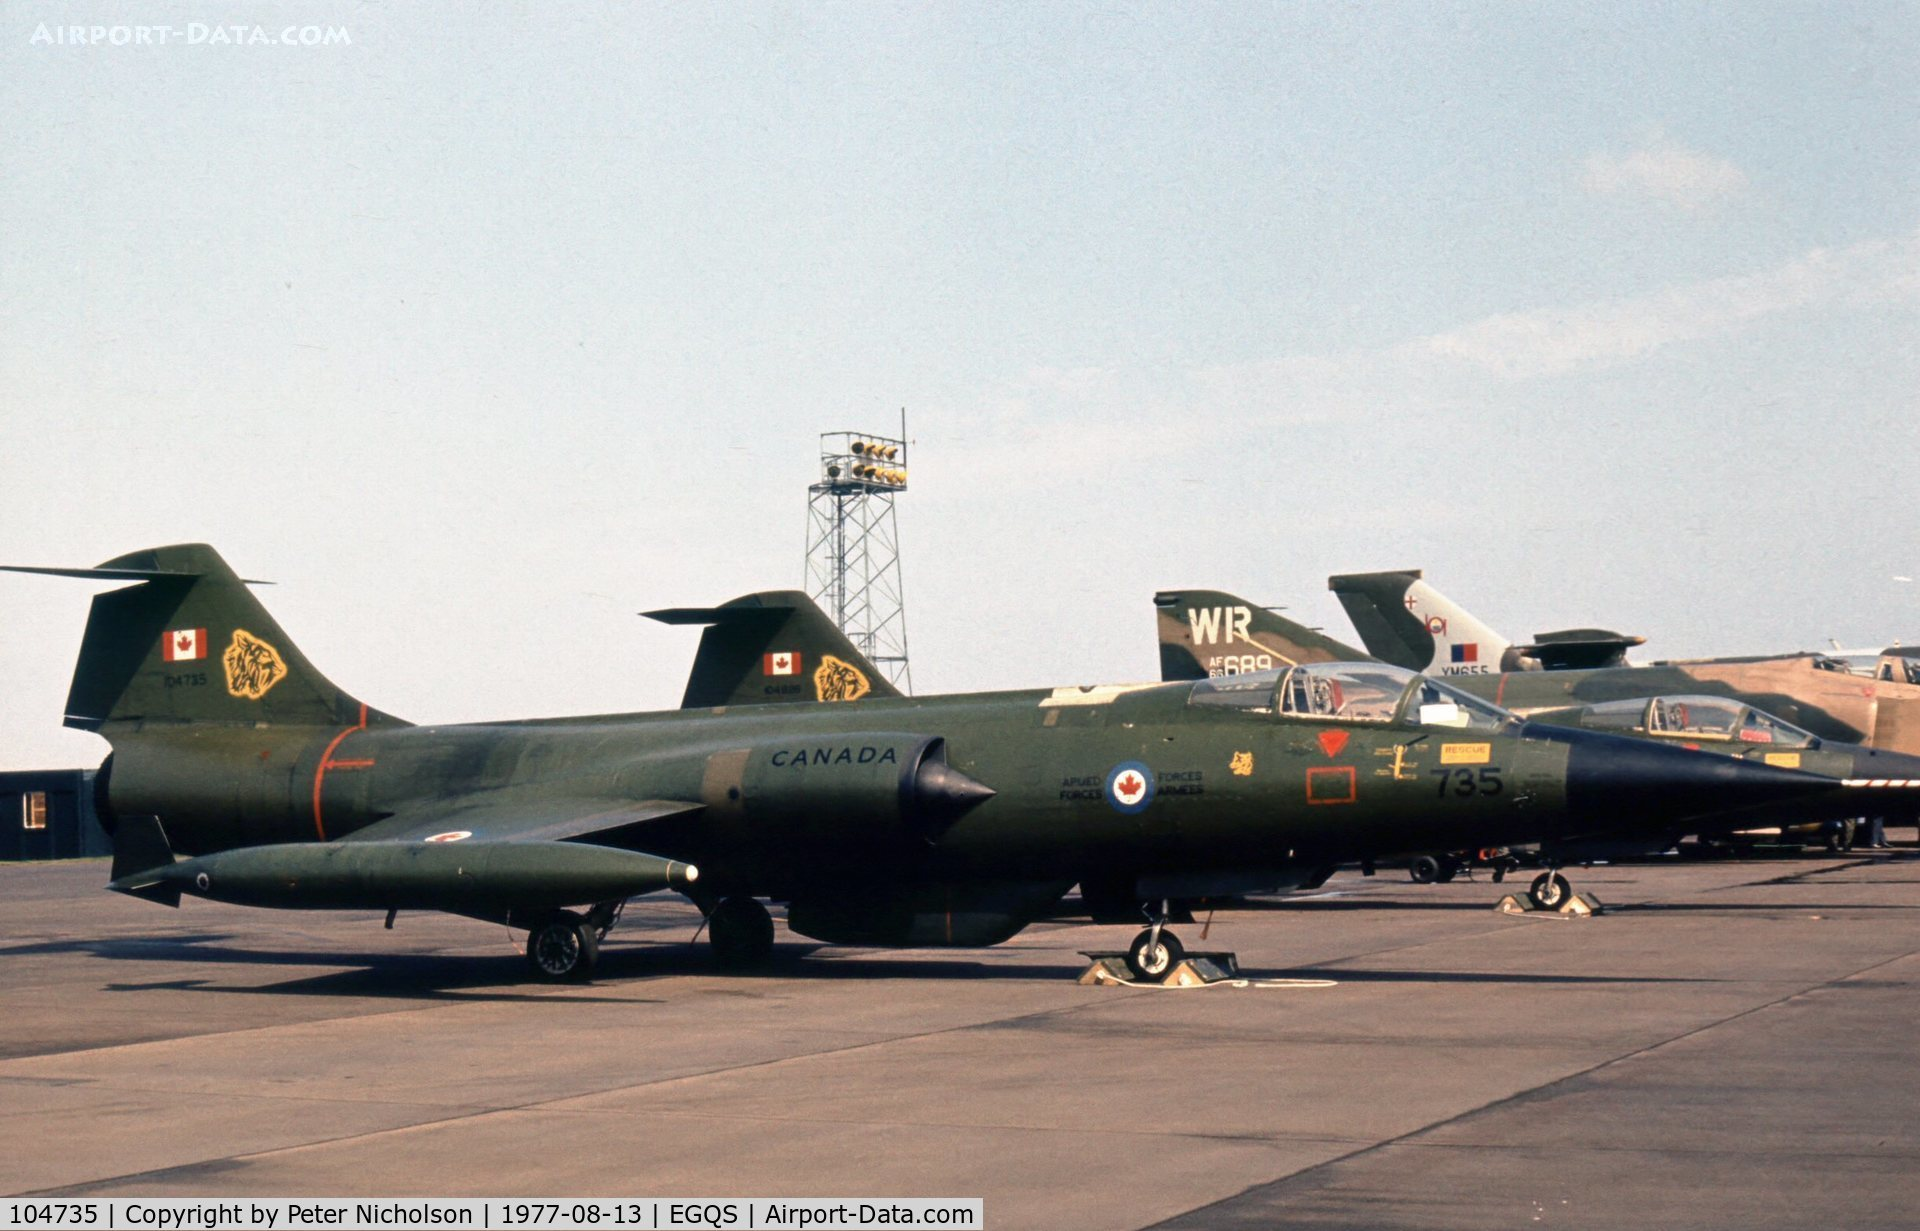 104735, Canadair CF-104 Starfighter C/N 683A-1035, CF-104 Starfighter of 439 Squadron Canadian Armed Forces at the 1977 RAF Lossiemouth Open Day.